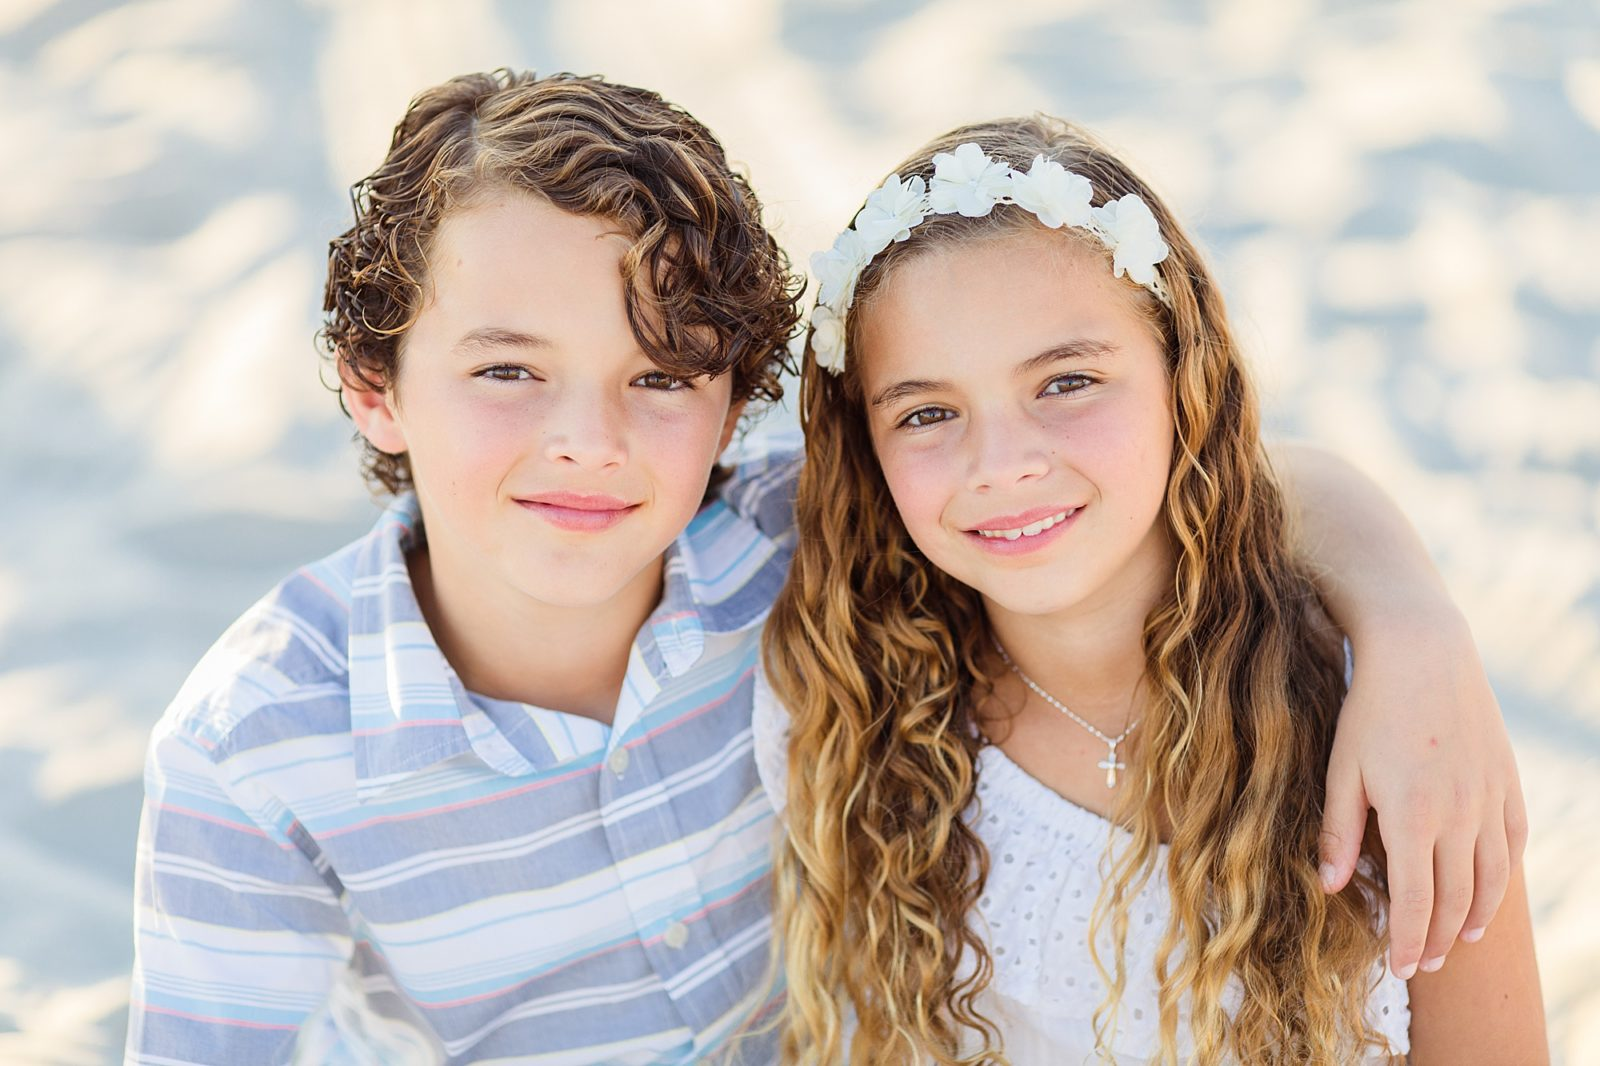 Siblings | San Diego Photography